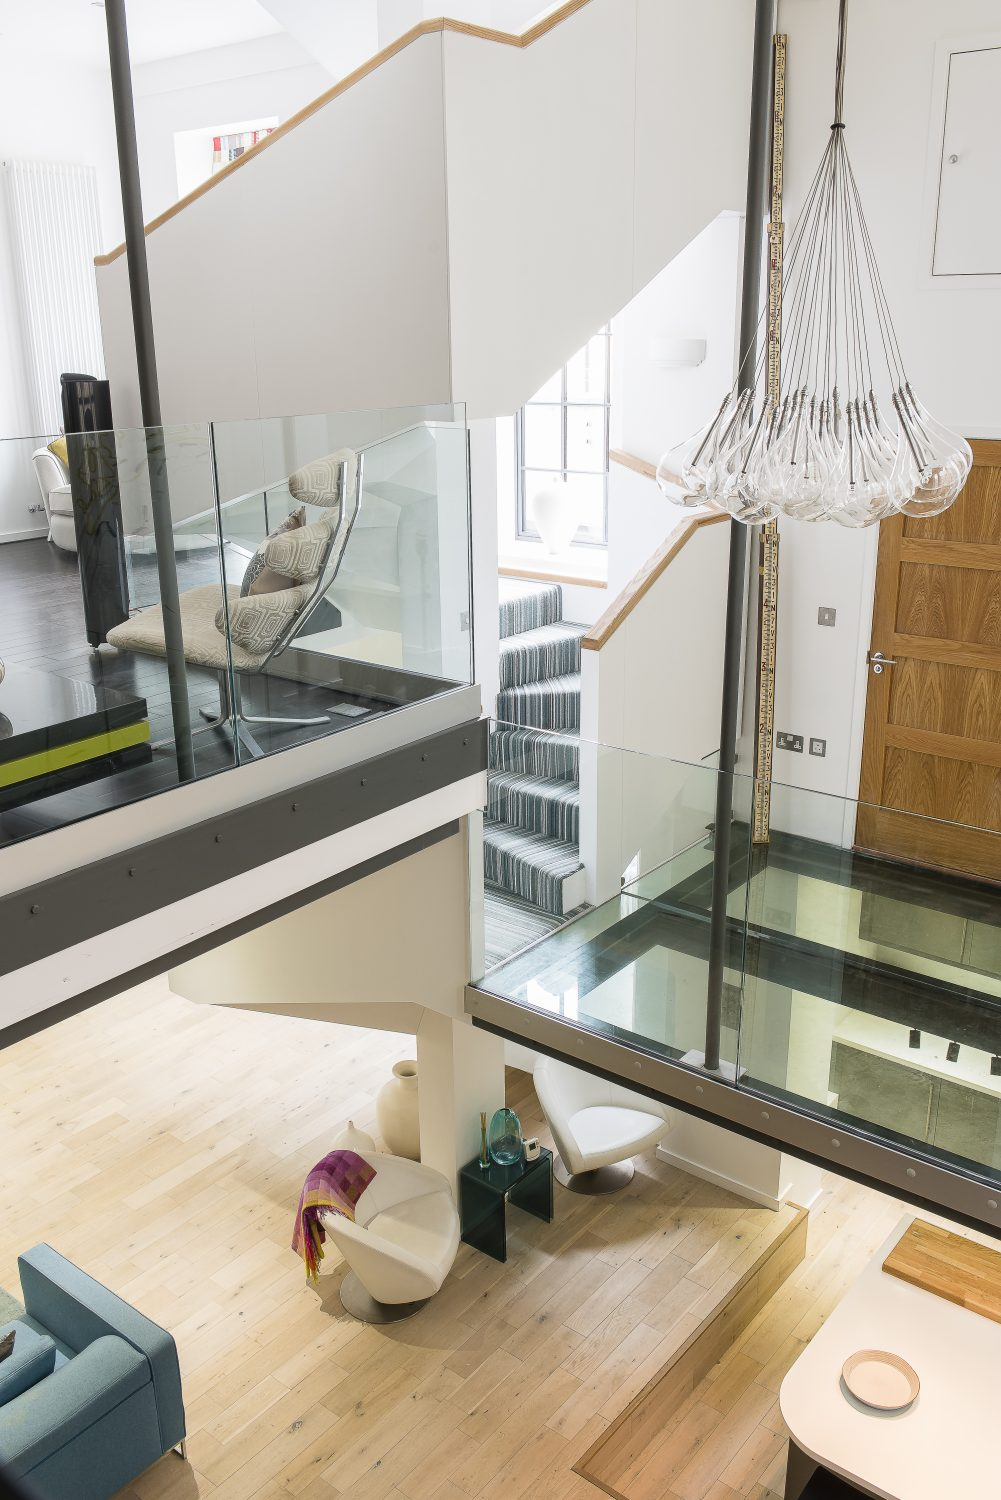 Three levels were created in the huge space, linked by a bespoke staircase. The light is by Christian Cubina. It took 12 men to lift the glass floor of the mezzanine into place